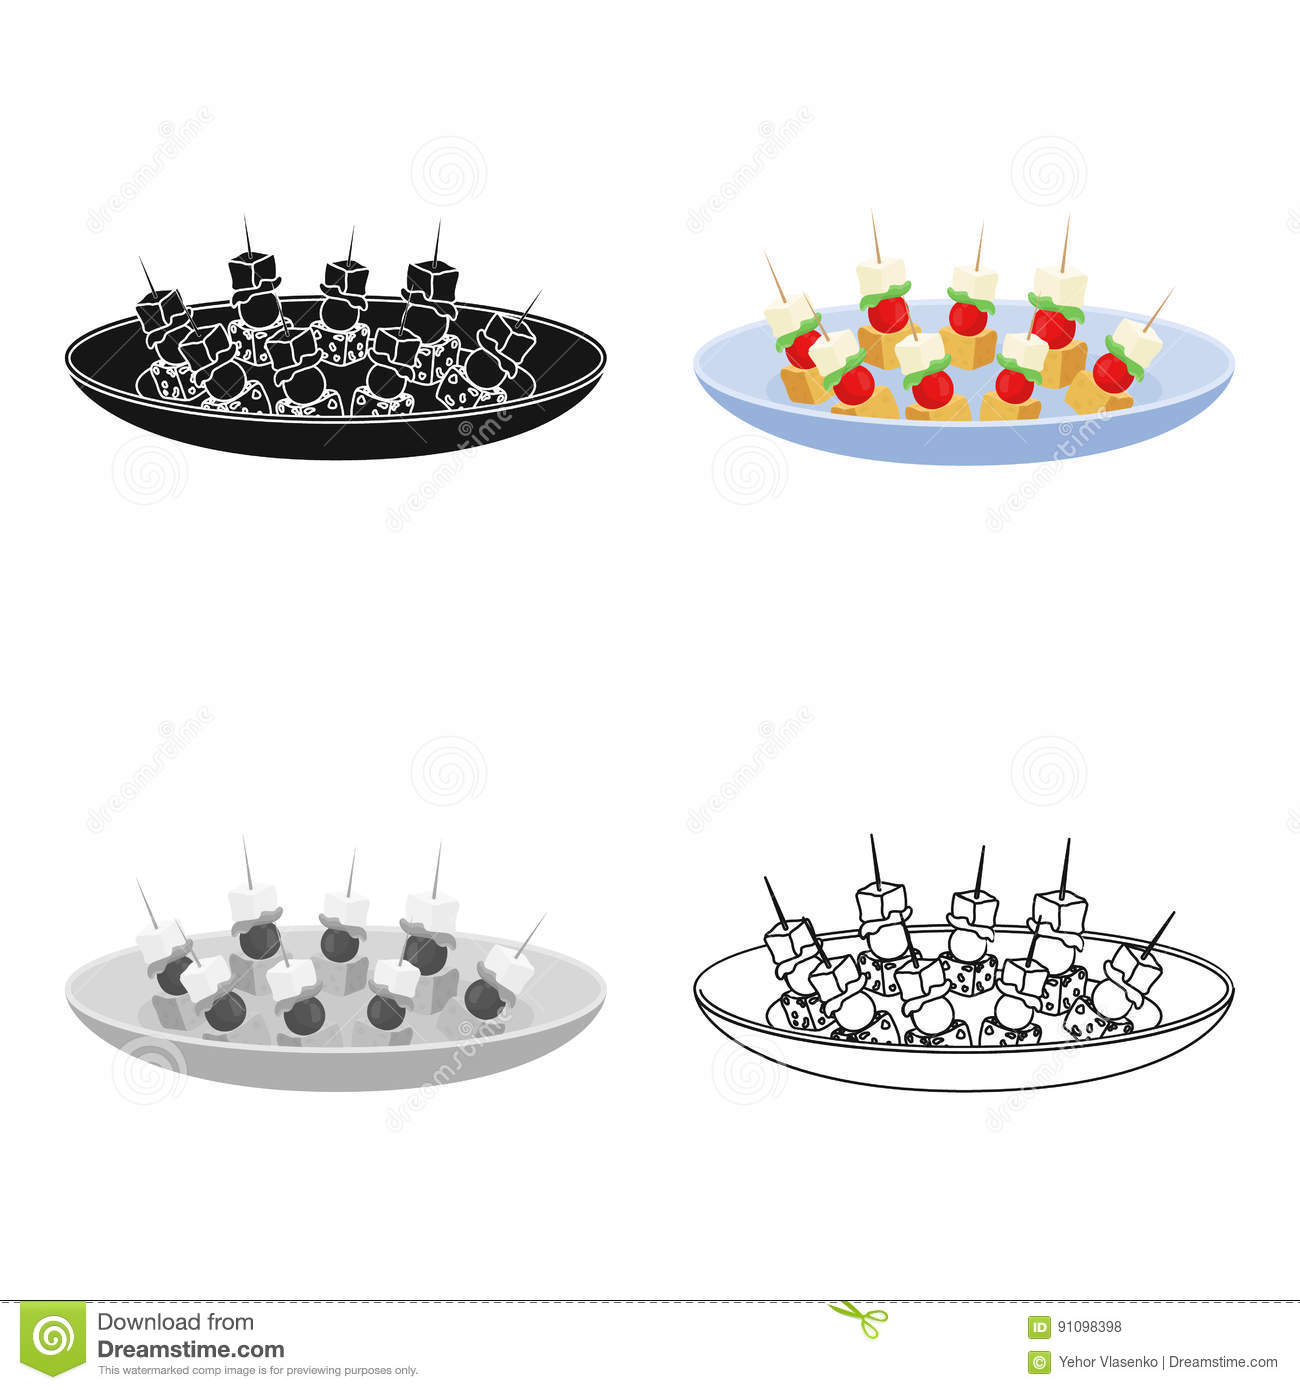 Canape on the plate icon in cartoon style isolated on for Canape vector download